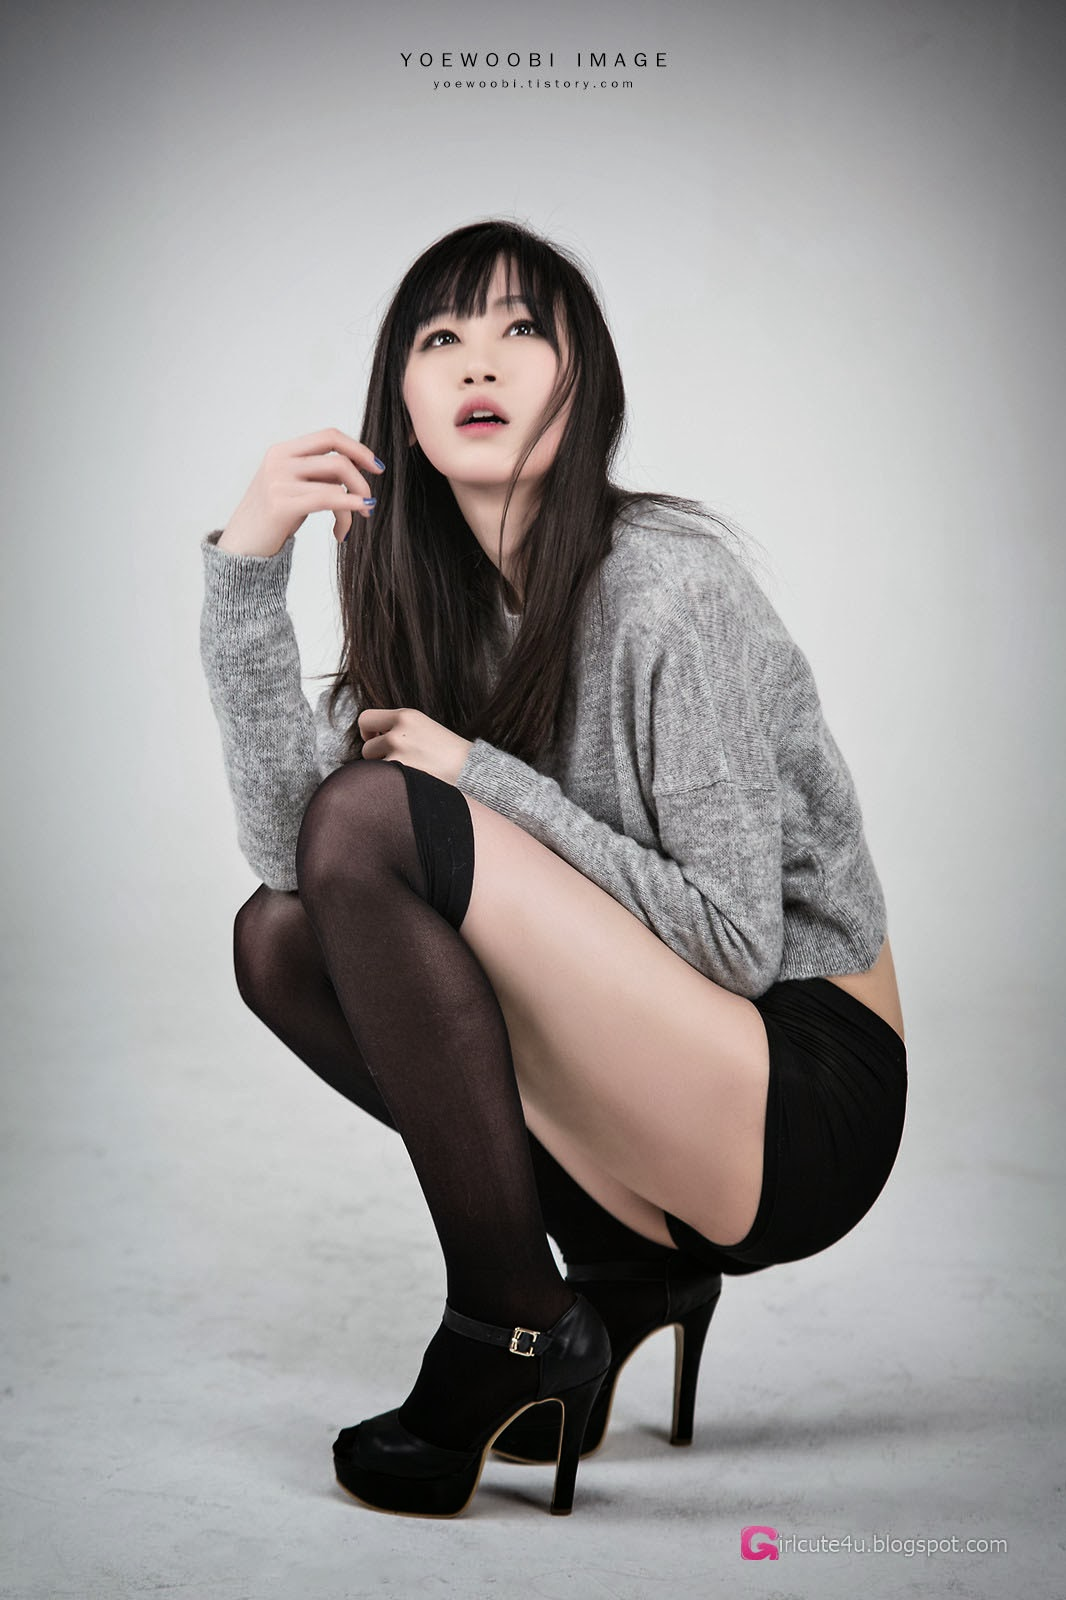 2 Kim Mi Jin - New Model - very cute asian girl-girlcute4u.blogspot.com